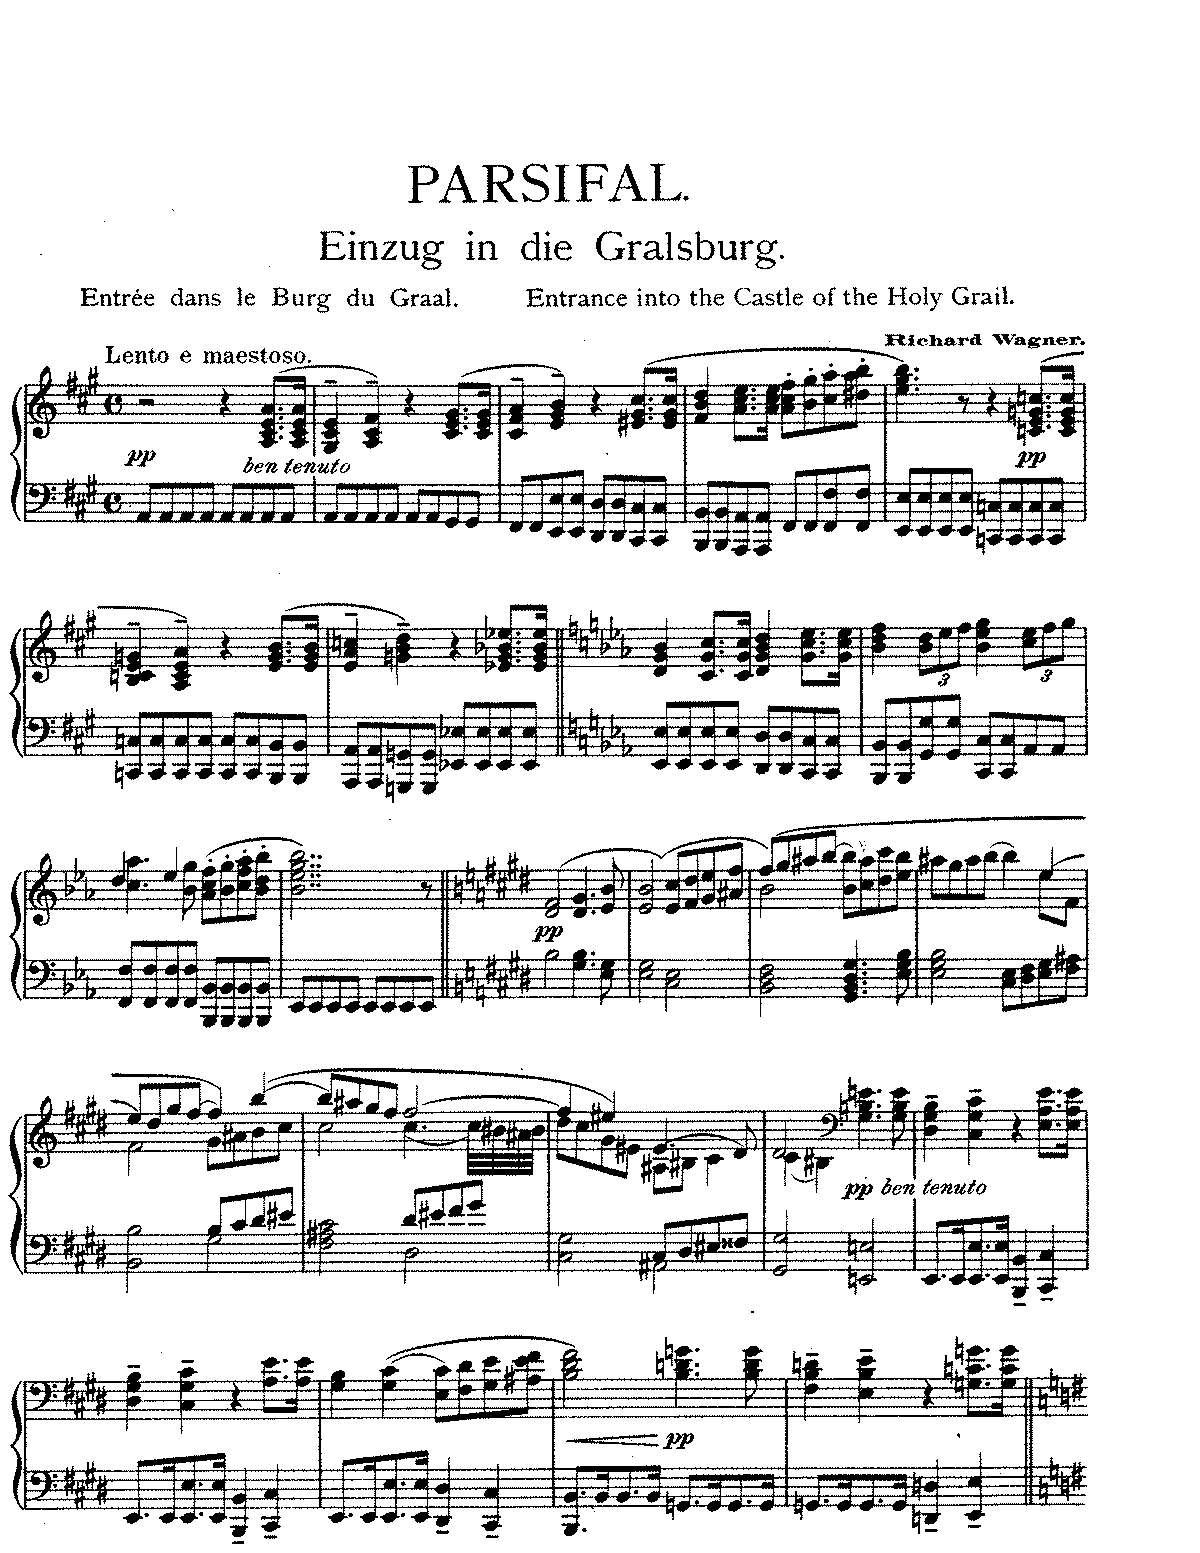 Wagner Entrance into the Castle of the Holy Grail.pdf